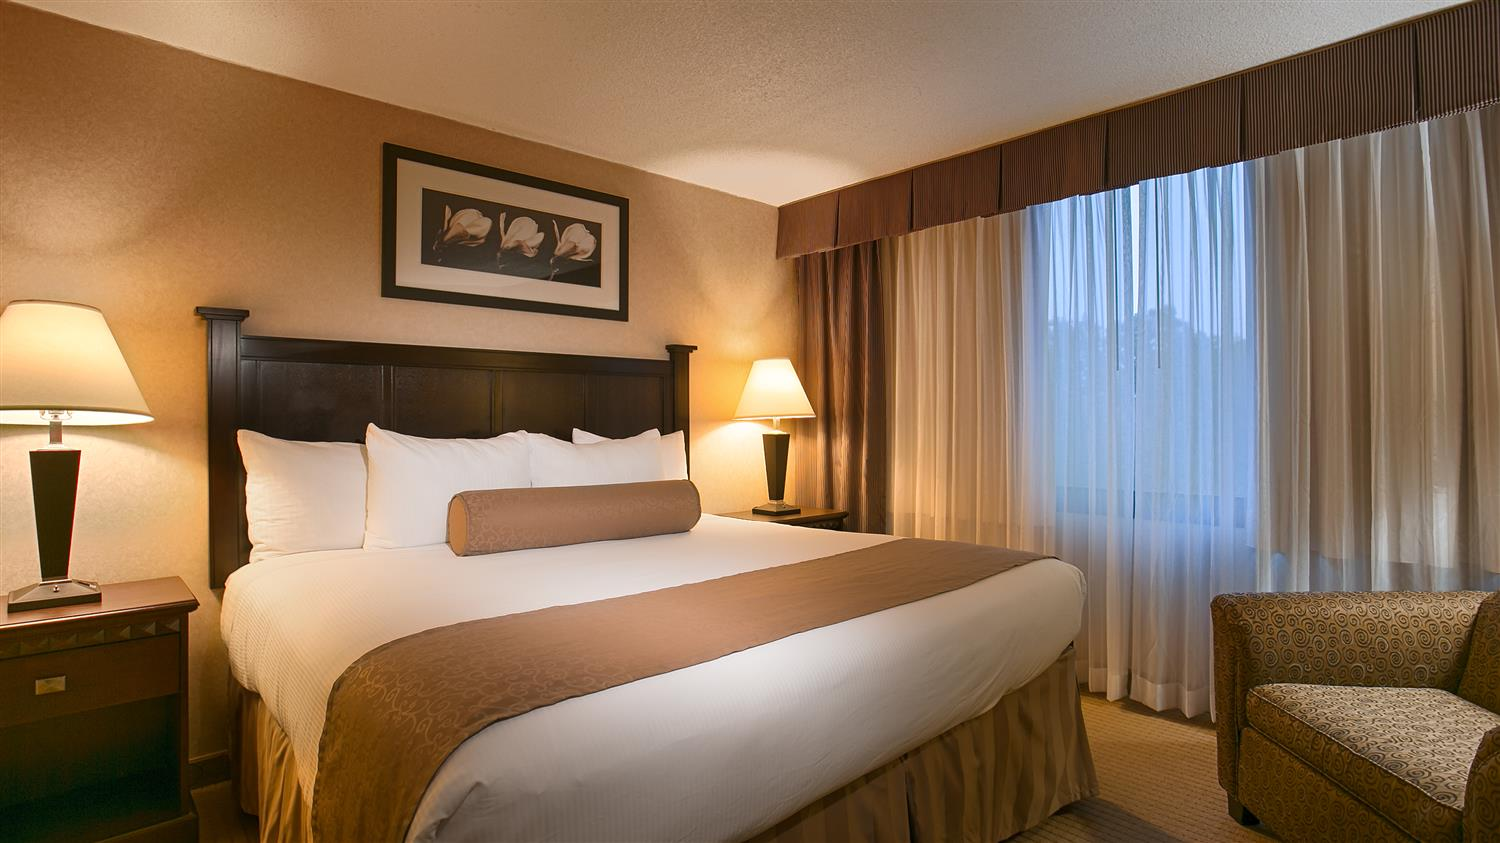 Hotel In Rockville, MD - Best Western Plus Rockville Hotel